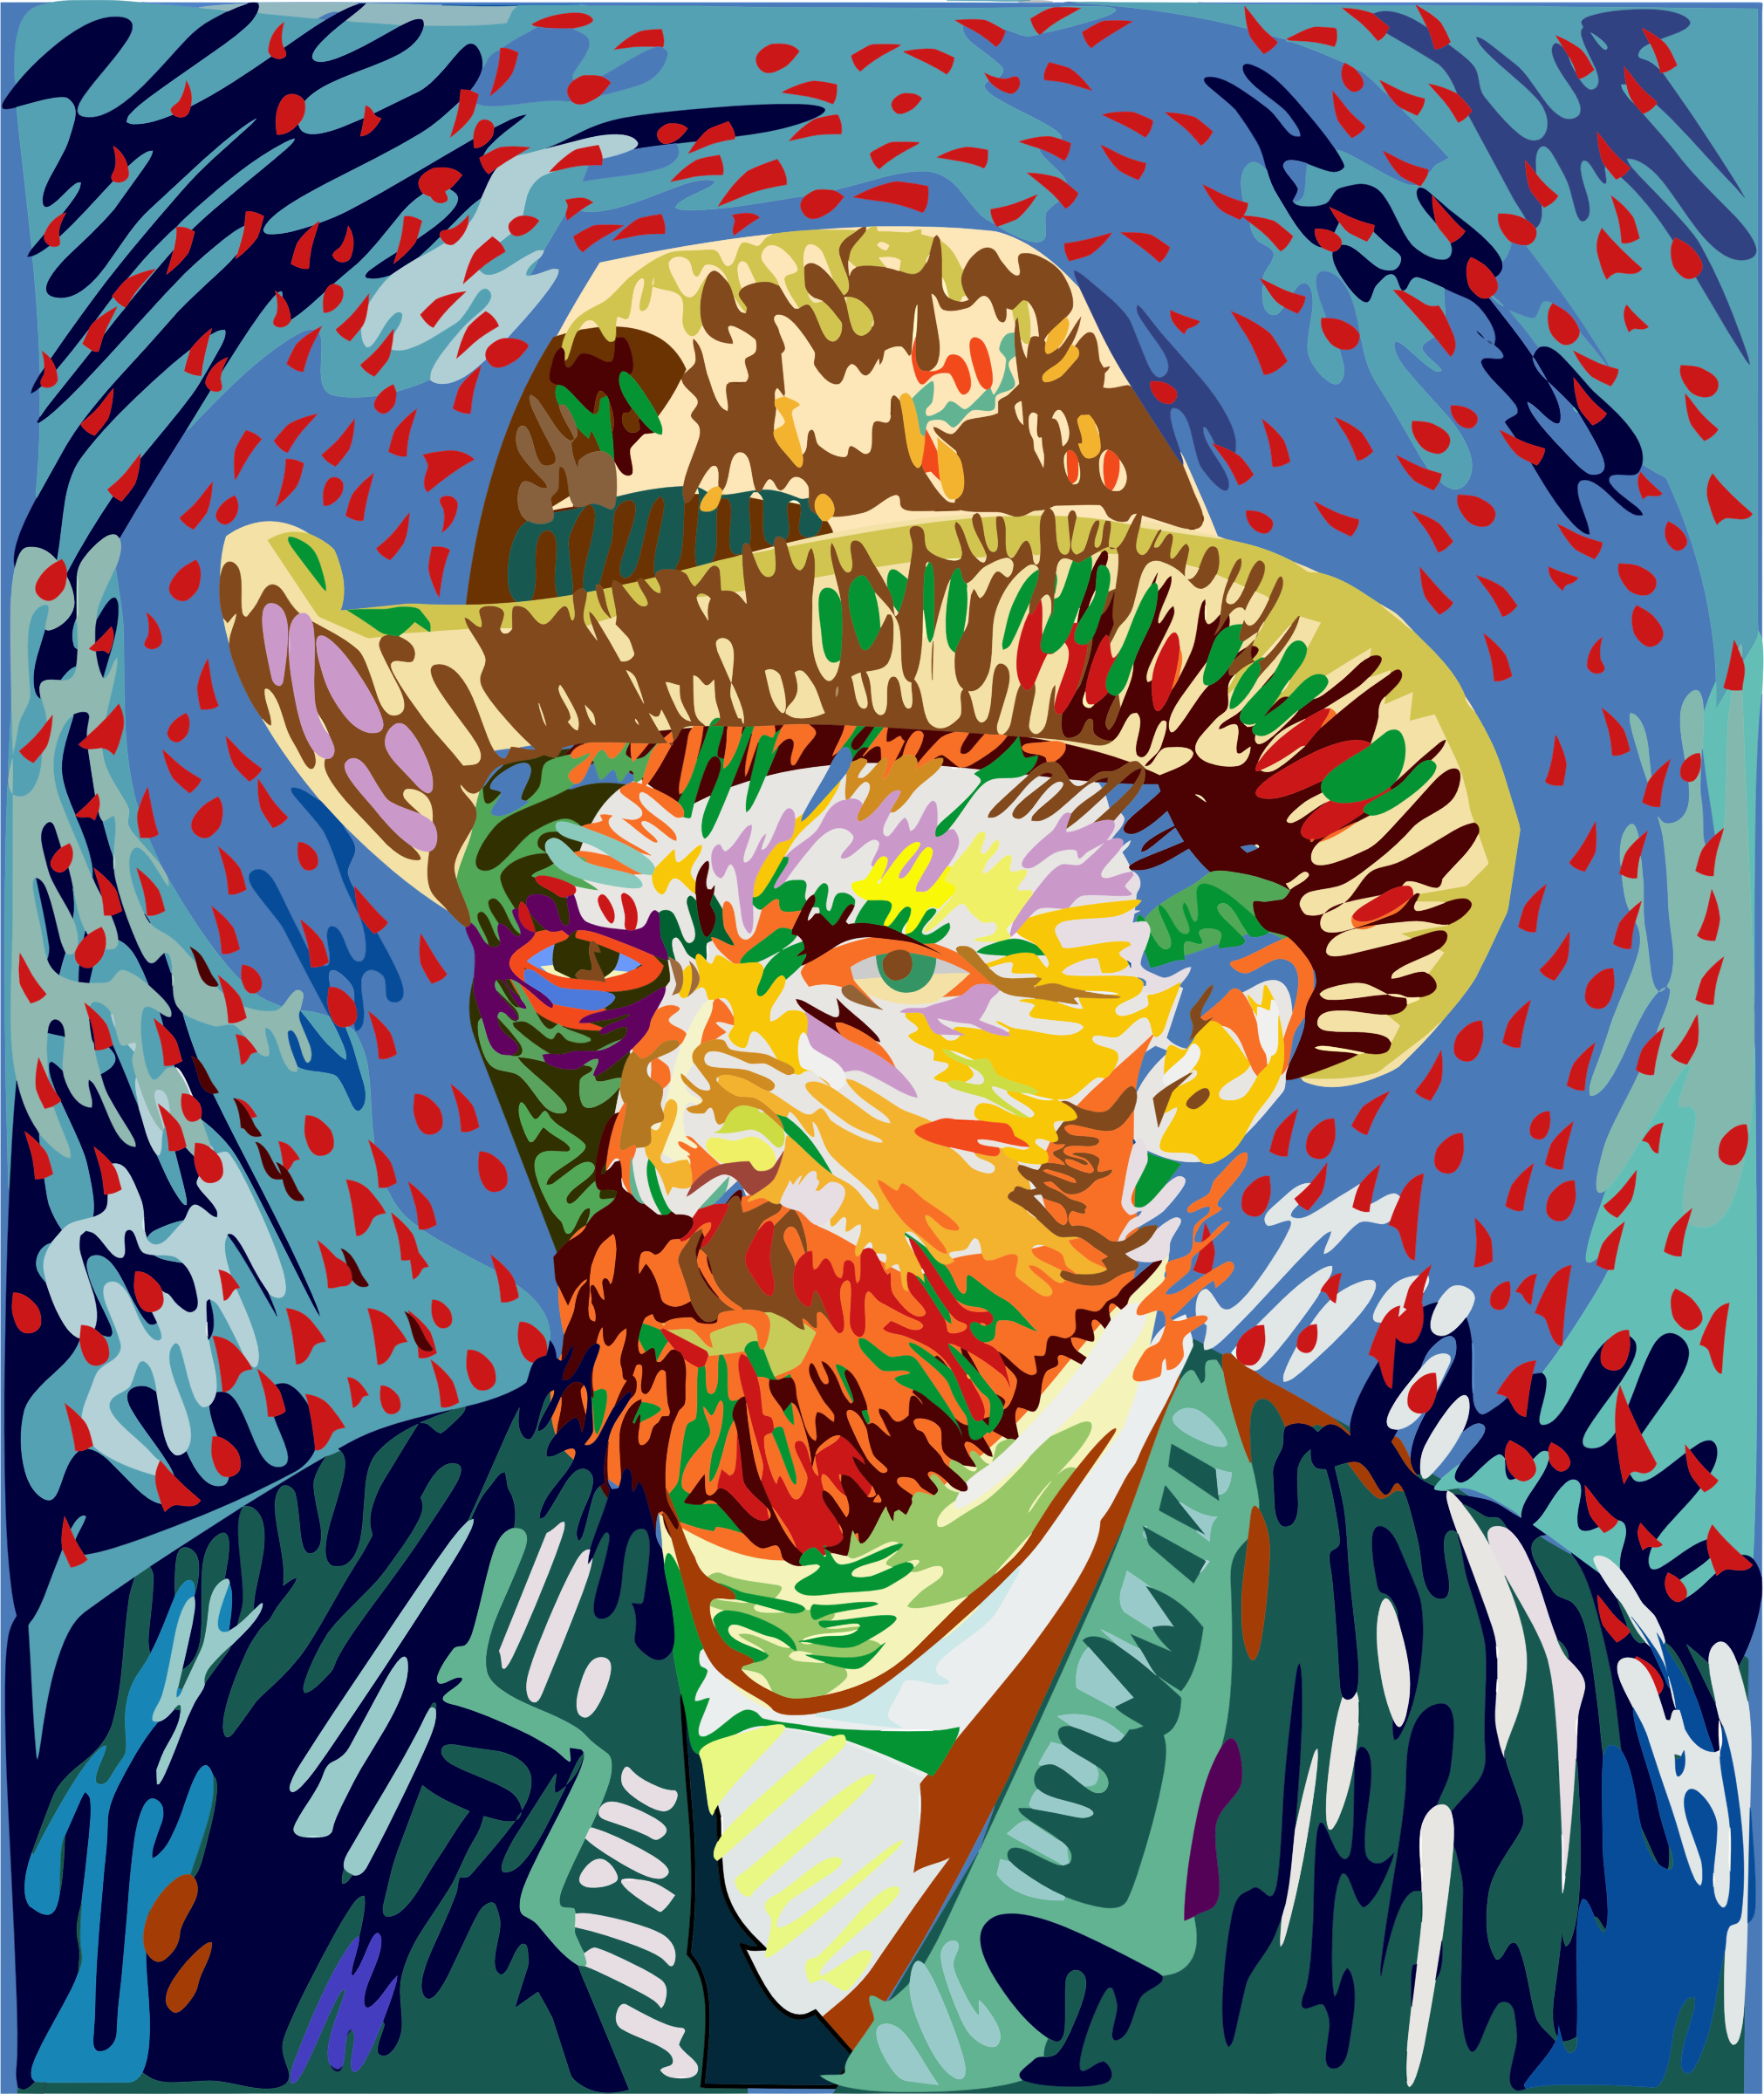 Abstract Vincent Van Gogh Portrait by GDJ